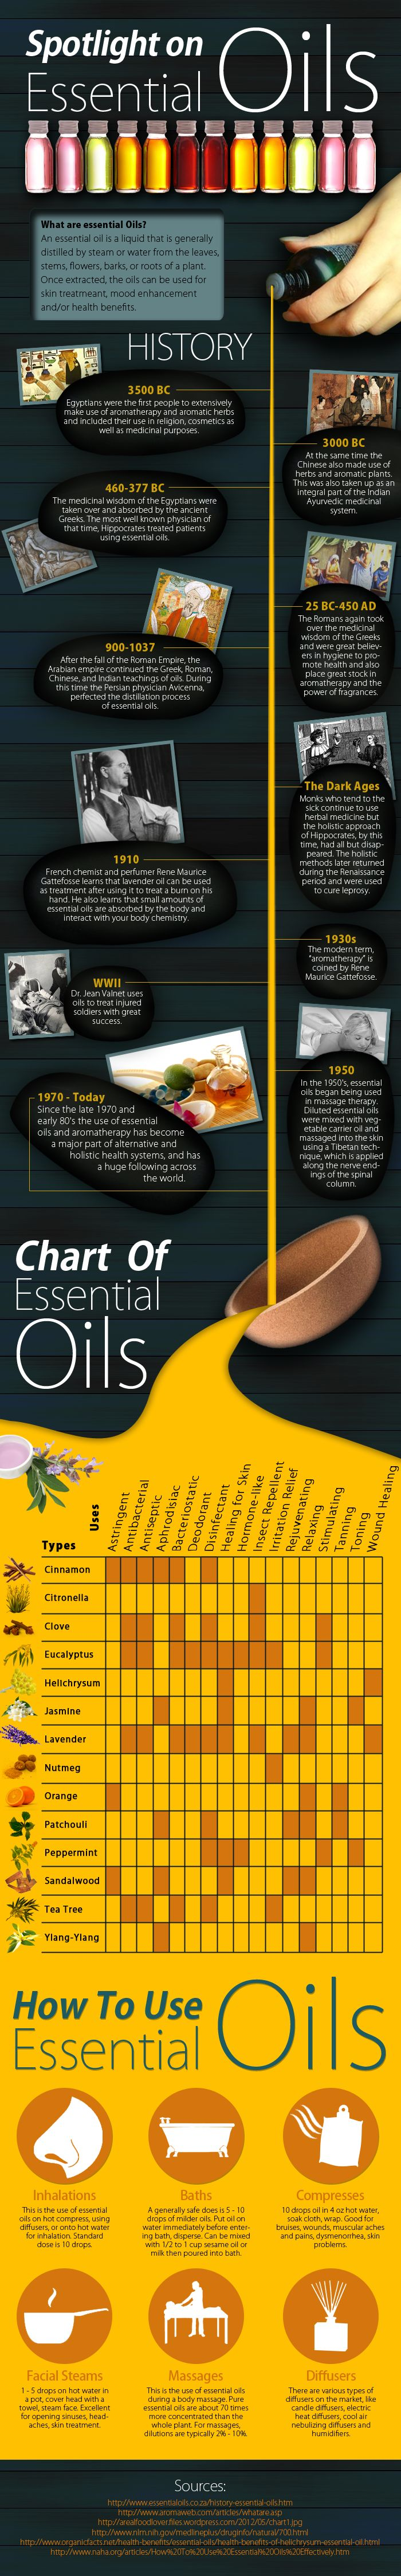 Spotlight on Essential Oils